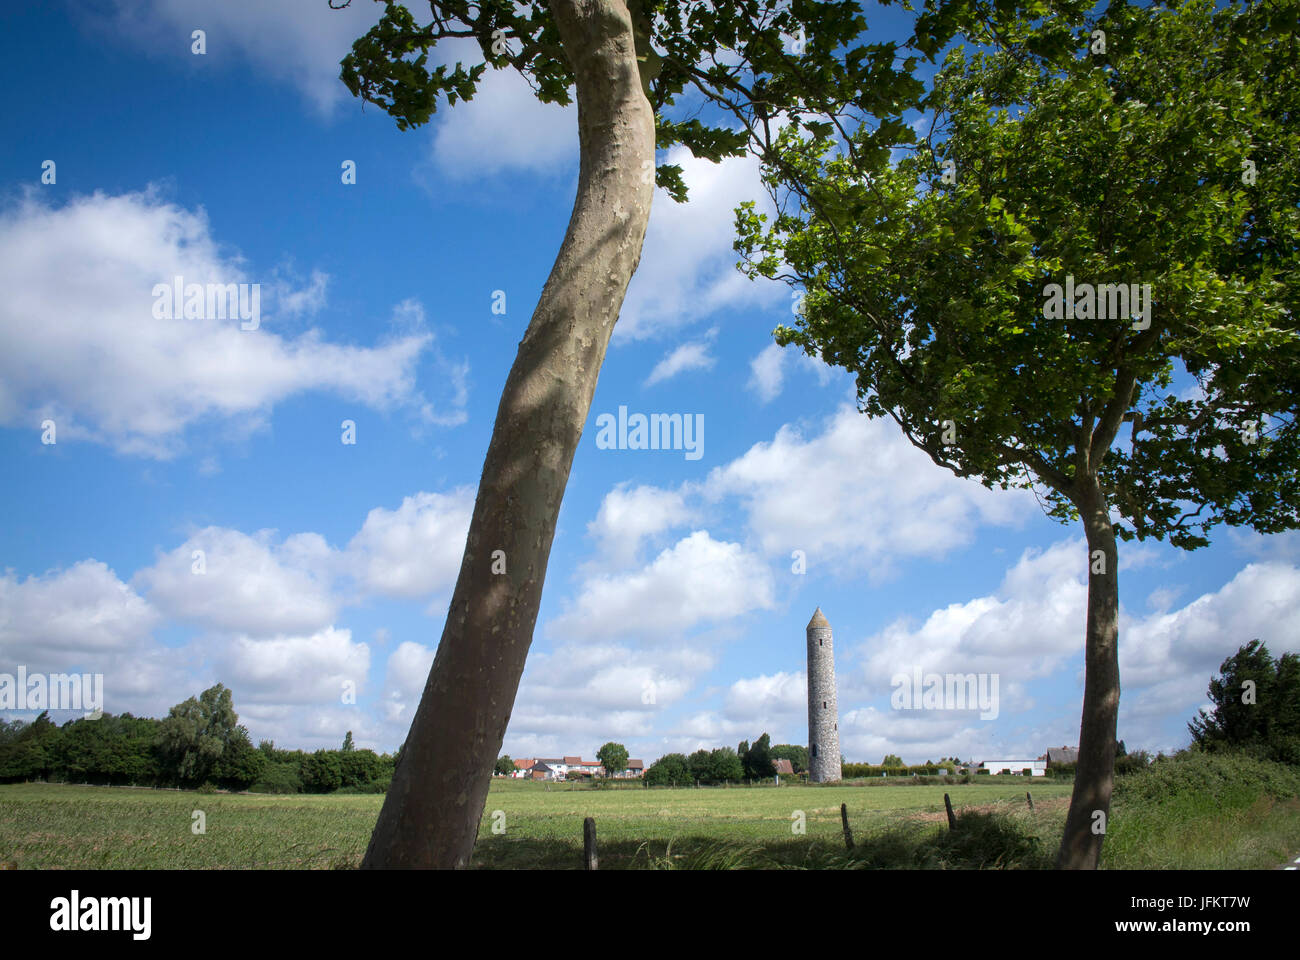 The Island of Ireland Peace Park and its surrounding park, also called the Irish Peace Park or Irish Peace Tower - Stock Image